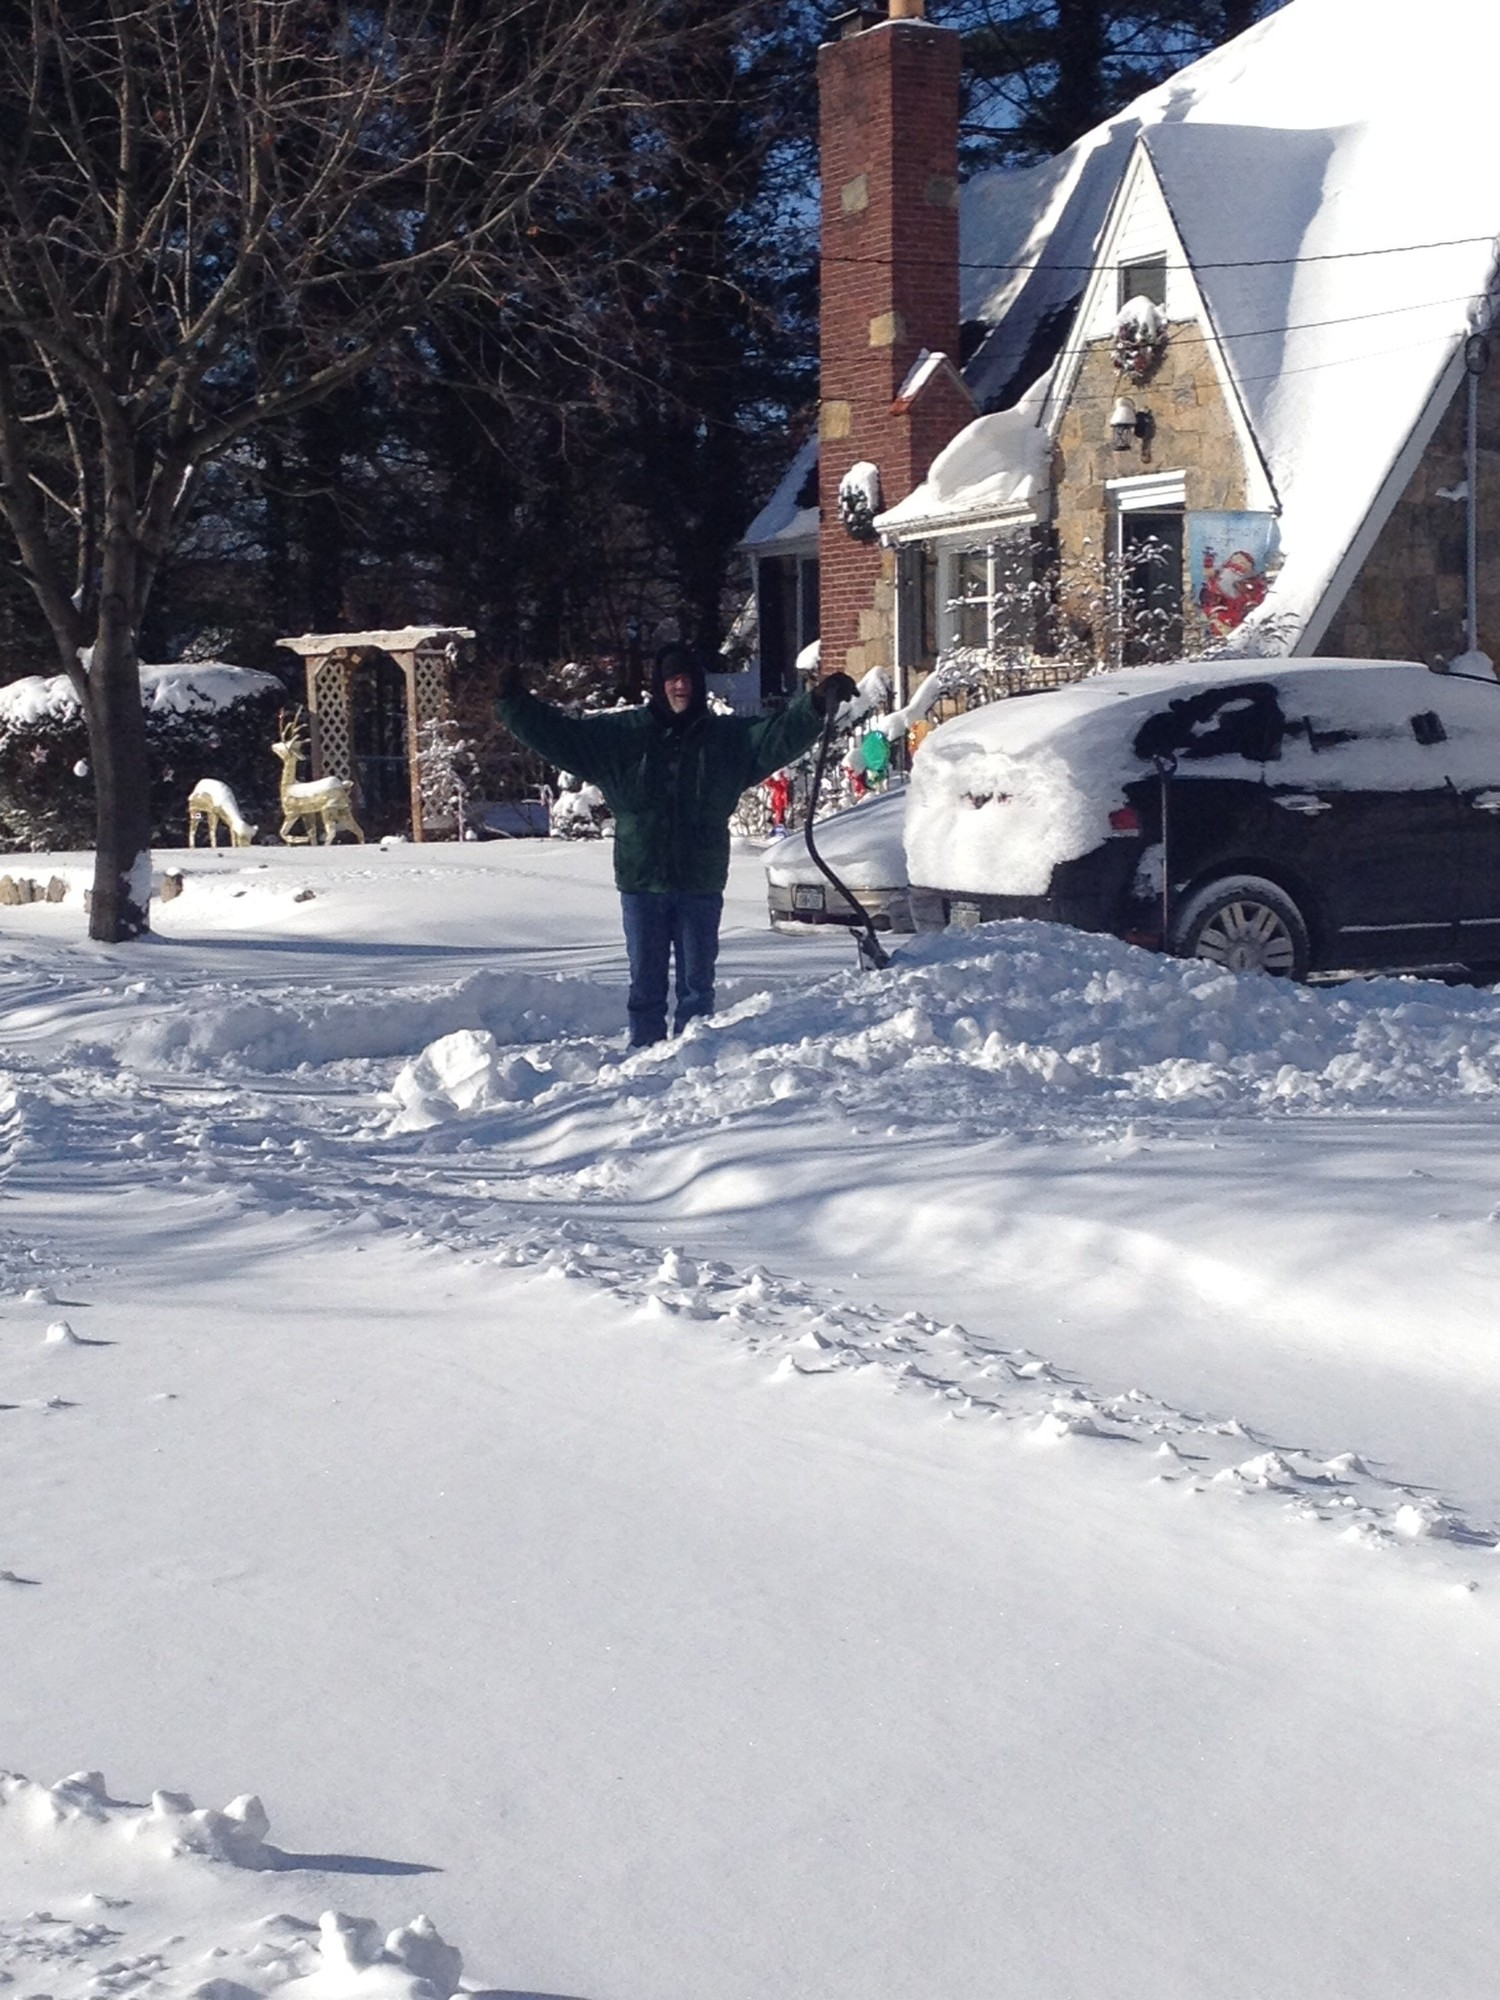 Wayne Smith kept his spirits high while digging snow out of his driveway on Arthur Street in Seaford.